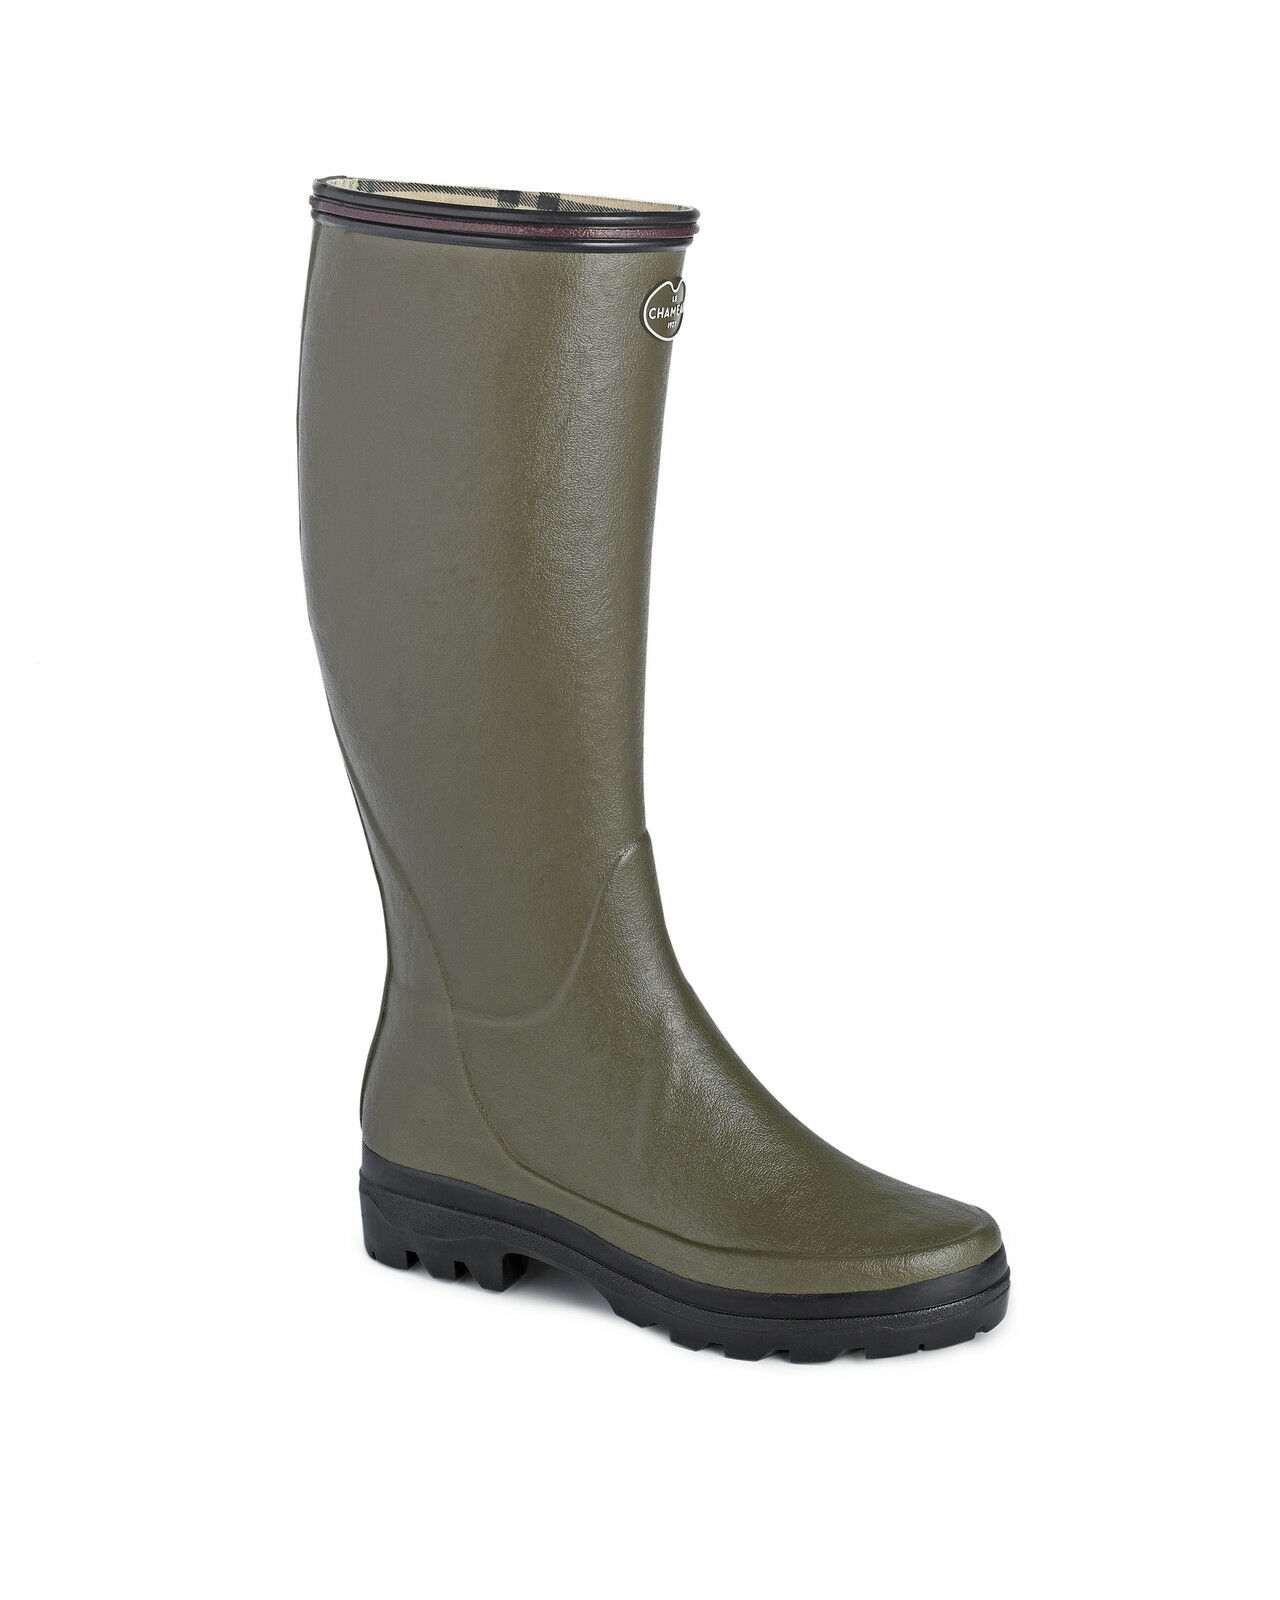 Le Chameau Giverny Ladies Wellington Boots